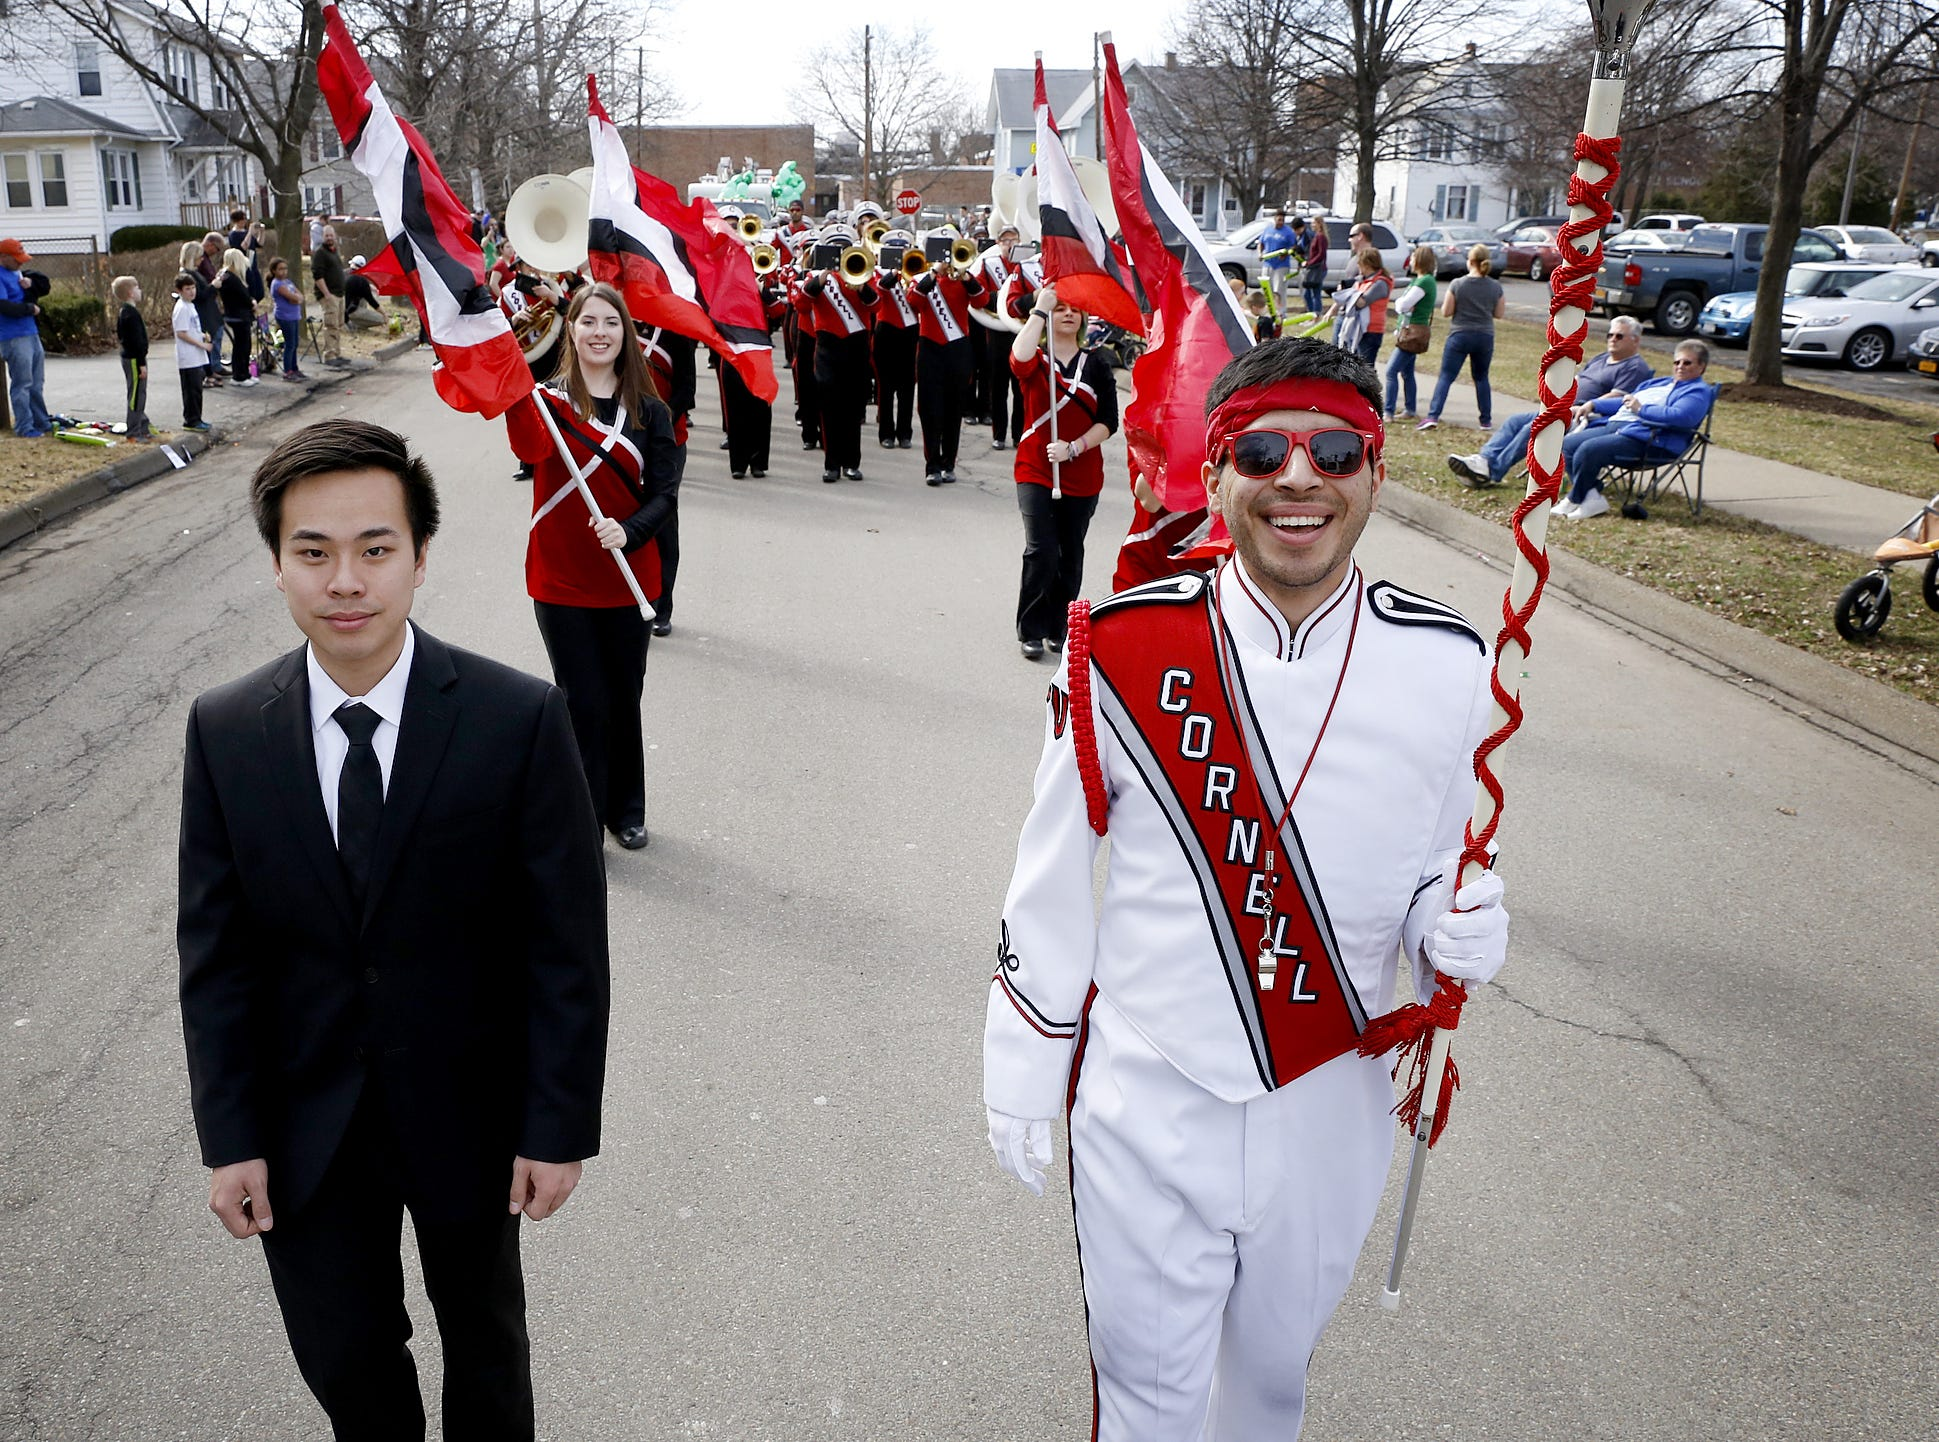 2016: Cornell University Big Red Marching Band acting head manager Jeffrey Van, a freshman, left, and drum major Sergio Preciado, a junior, leads the band Saturday during the St. Patrick's Day Parade in Horseheads.